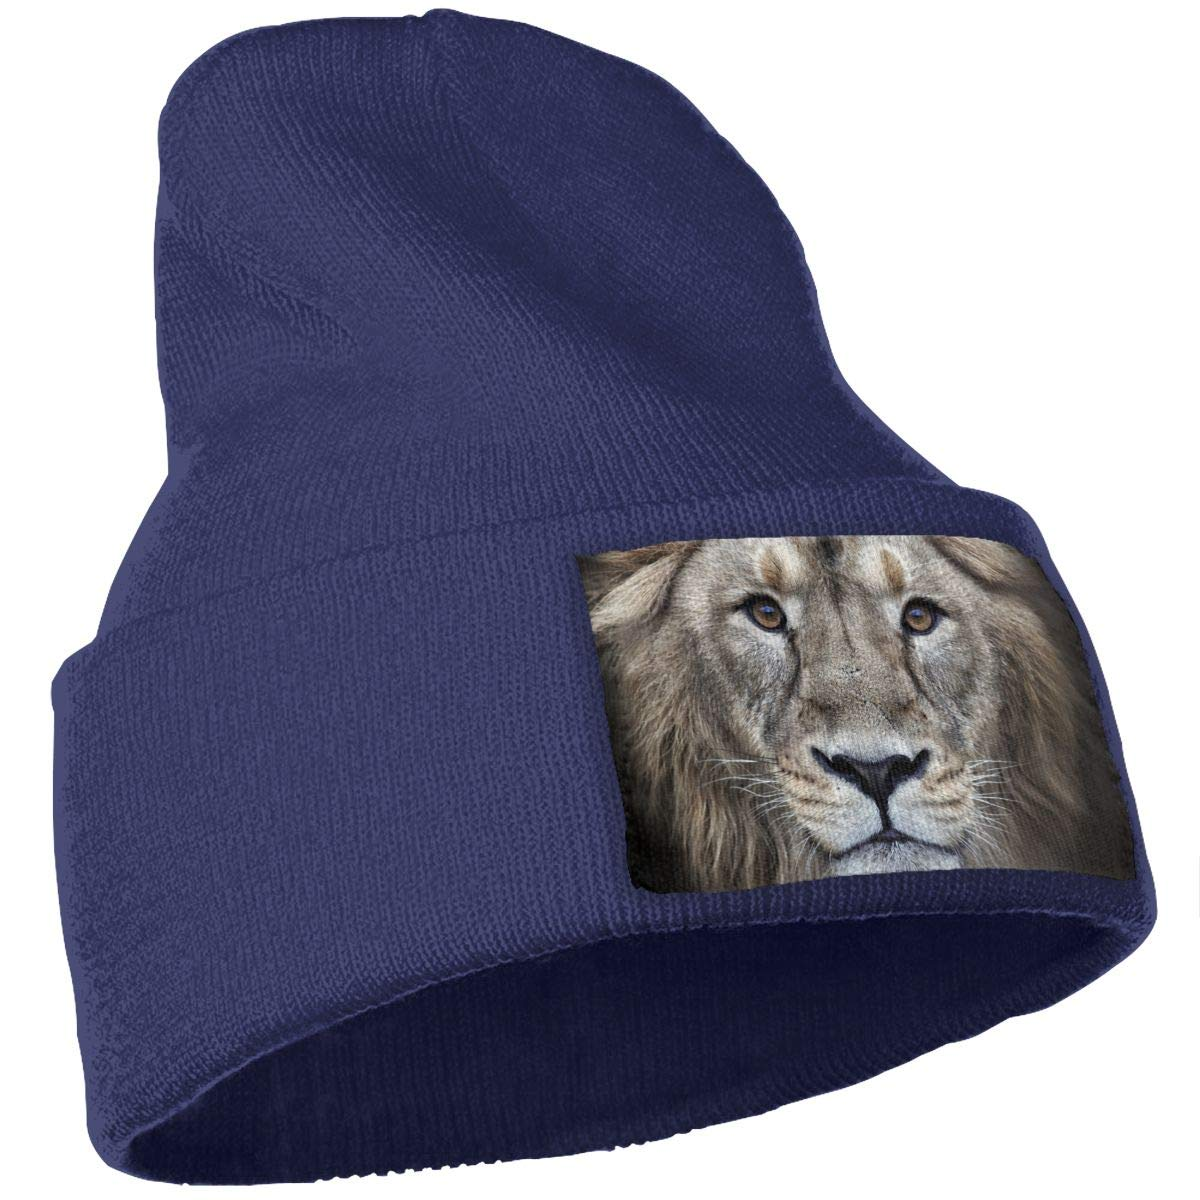 Lion Head King Hat for Men and Women Winter Warm Hats Knit Slouchy Thick Skull Cap Black